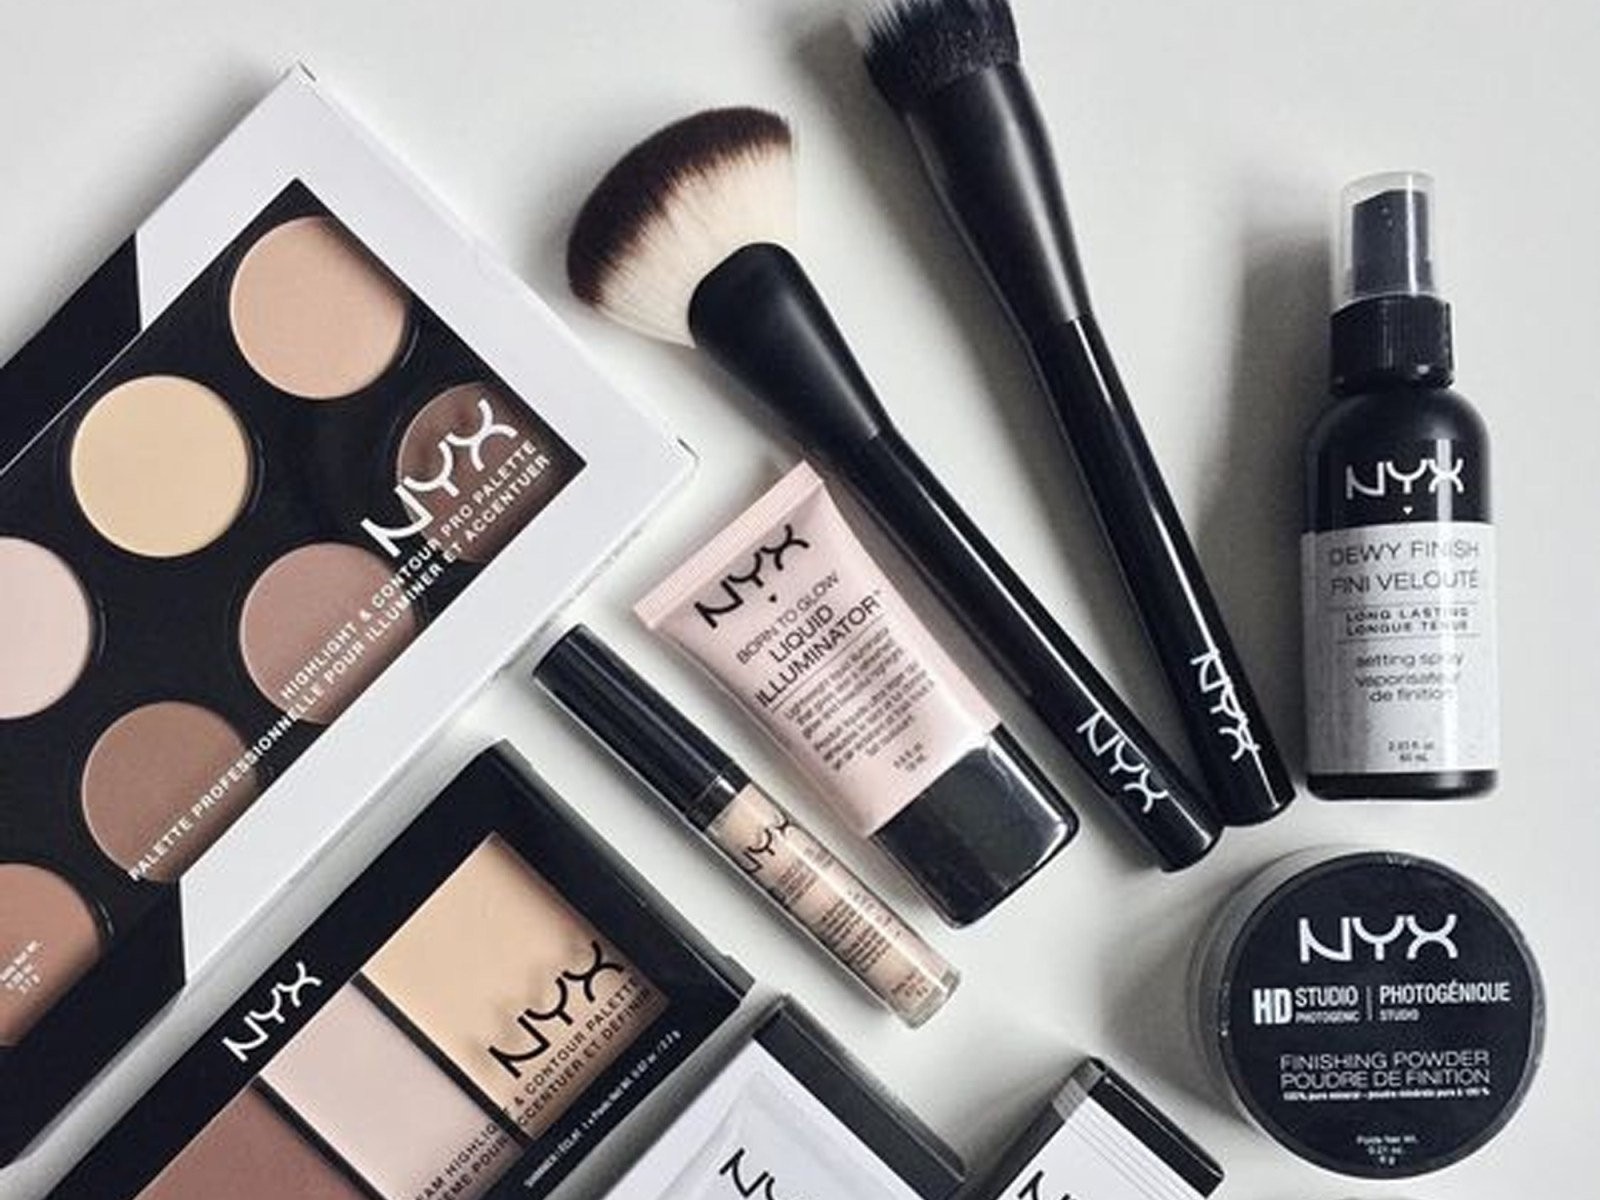 These are the best NYX makeup products that 2018 has blessed us with so far. If you're looking for cheap affordable makeup, NYX is the beauty brand you need!